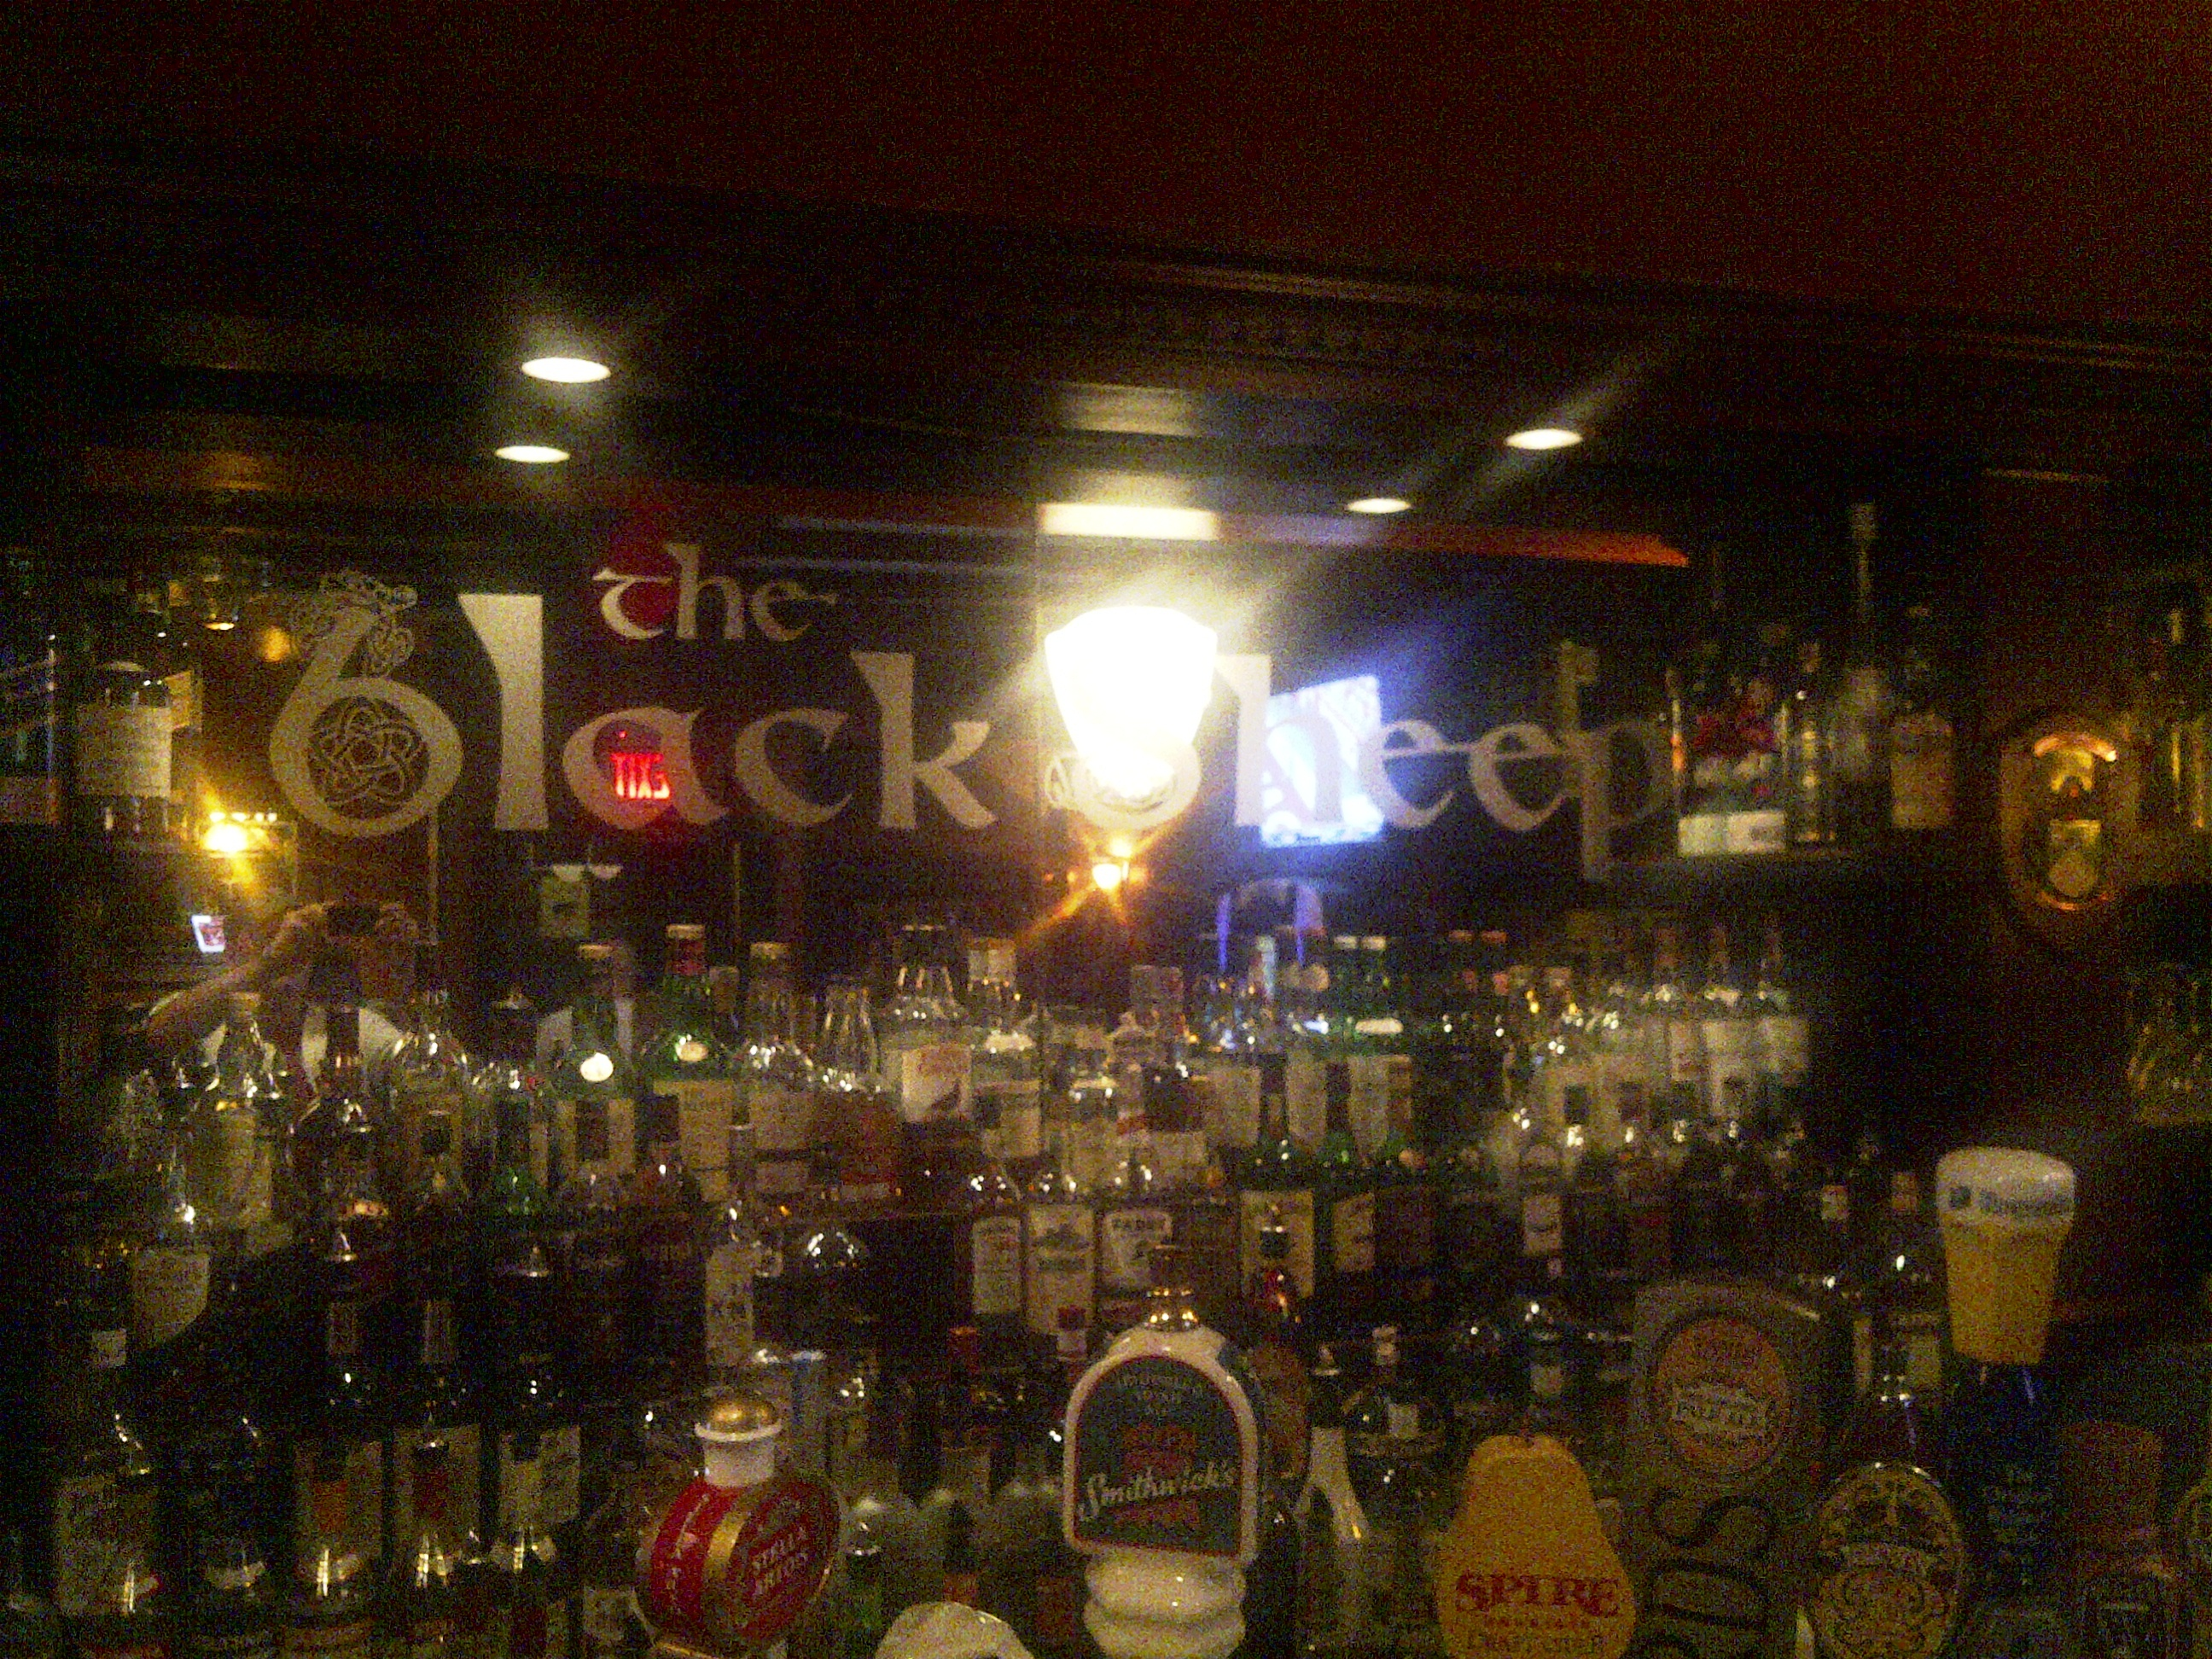 black sheep pub in philadelphia irish bars in philadelphia